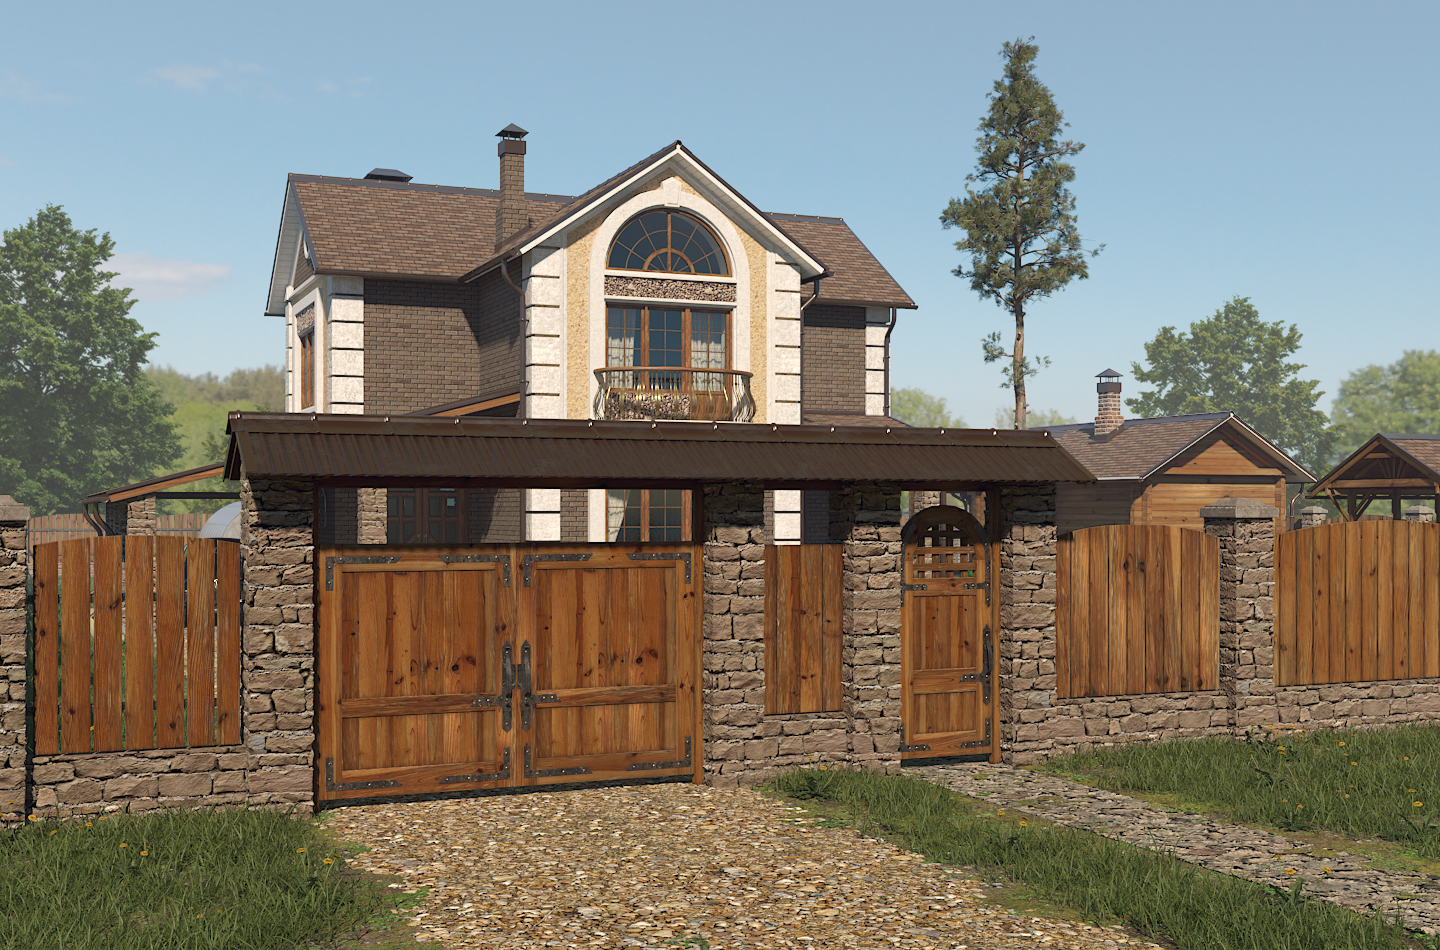 Visualization of a private ownership project. in 3d max corona render image